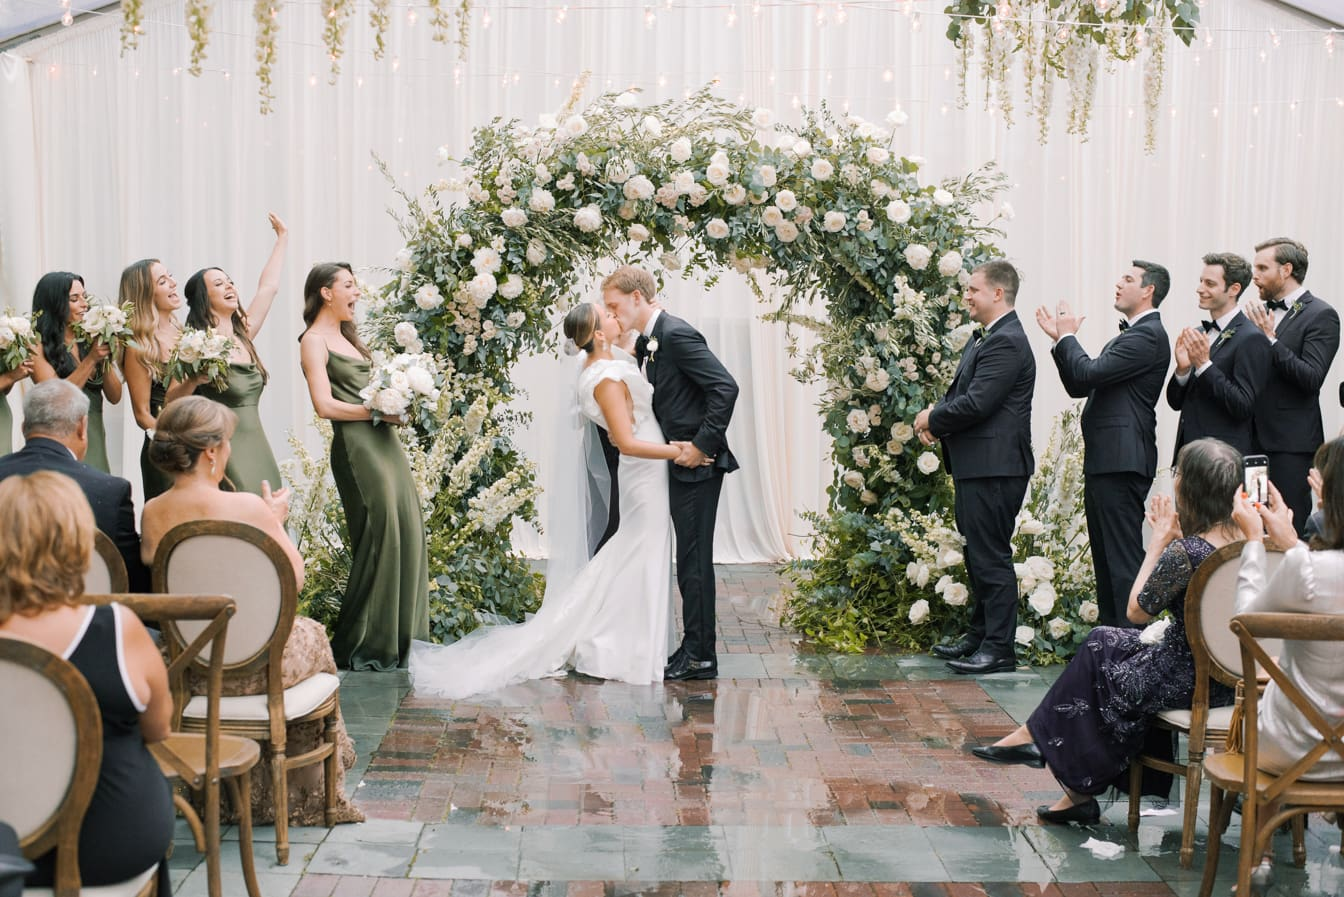 Bride and groom kissing each other under floral wedding arch after saying 'yes'